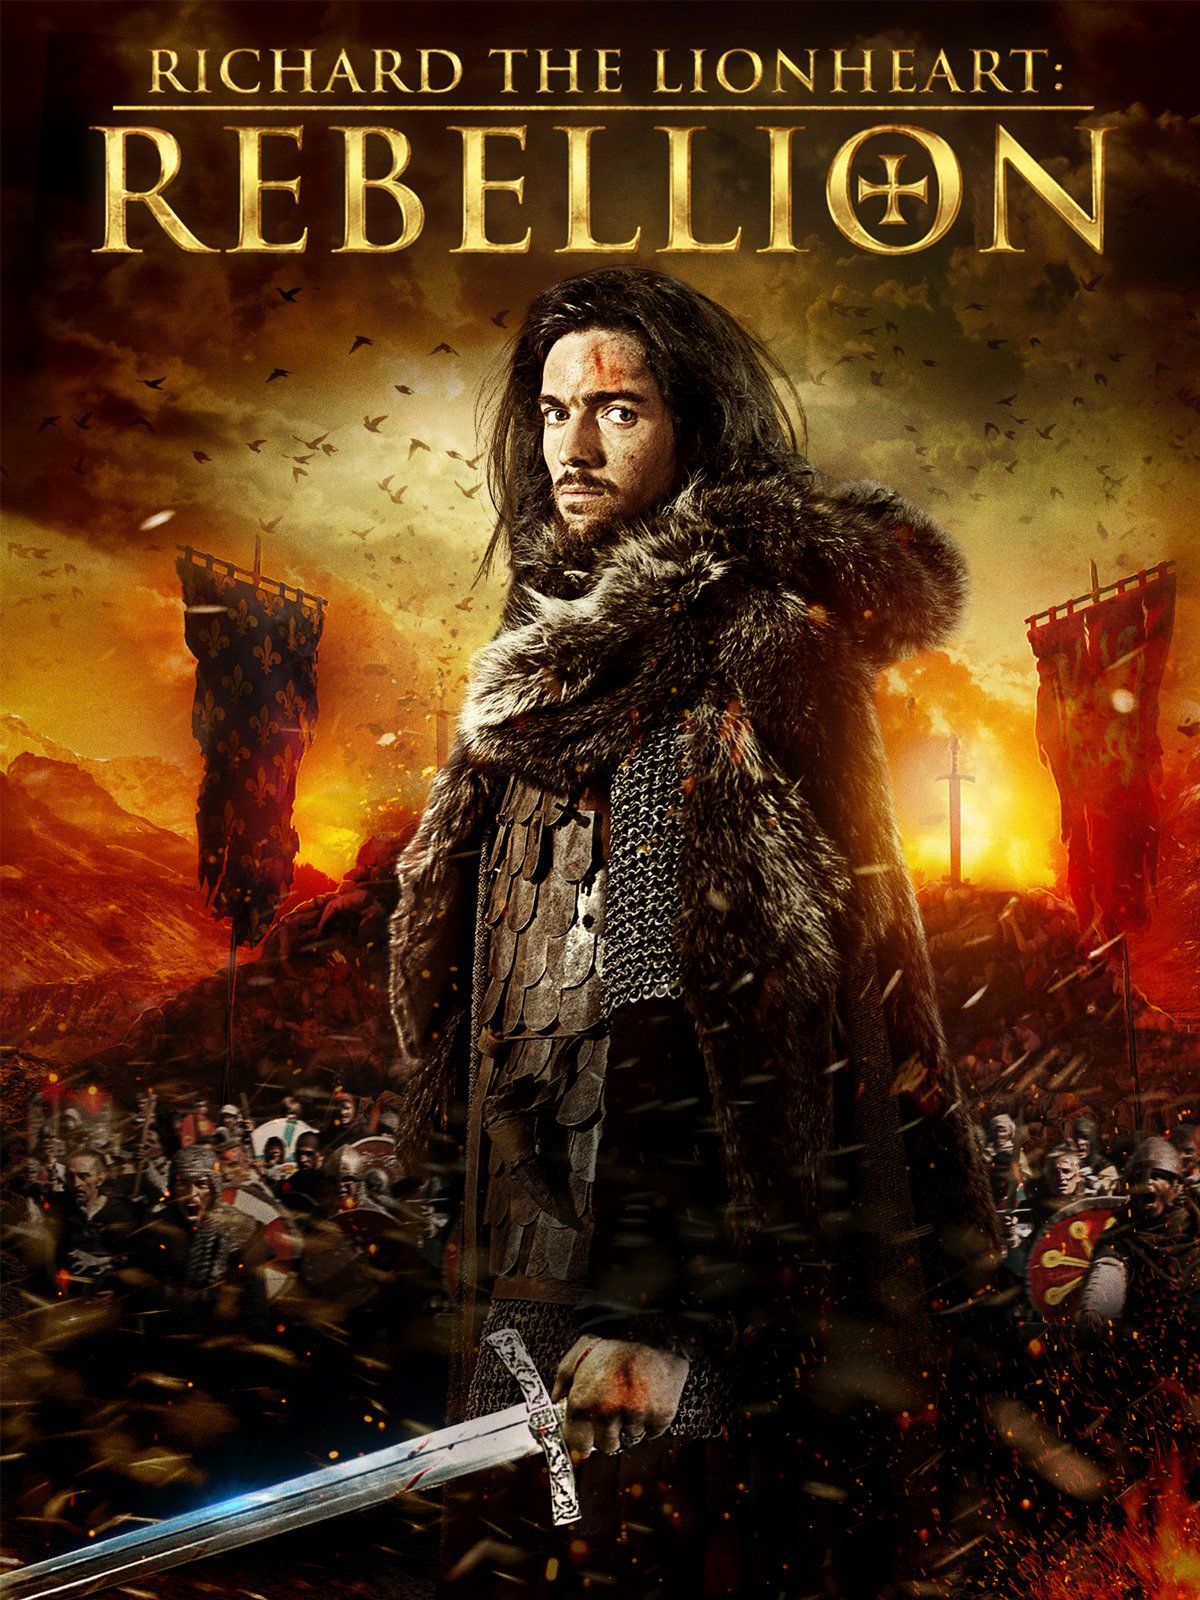 Richard The Lionheart Rebellion 2015 Dual Audio Hindi 1080p BluRay ESub 1.8GB Download